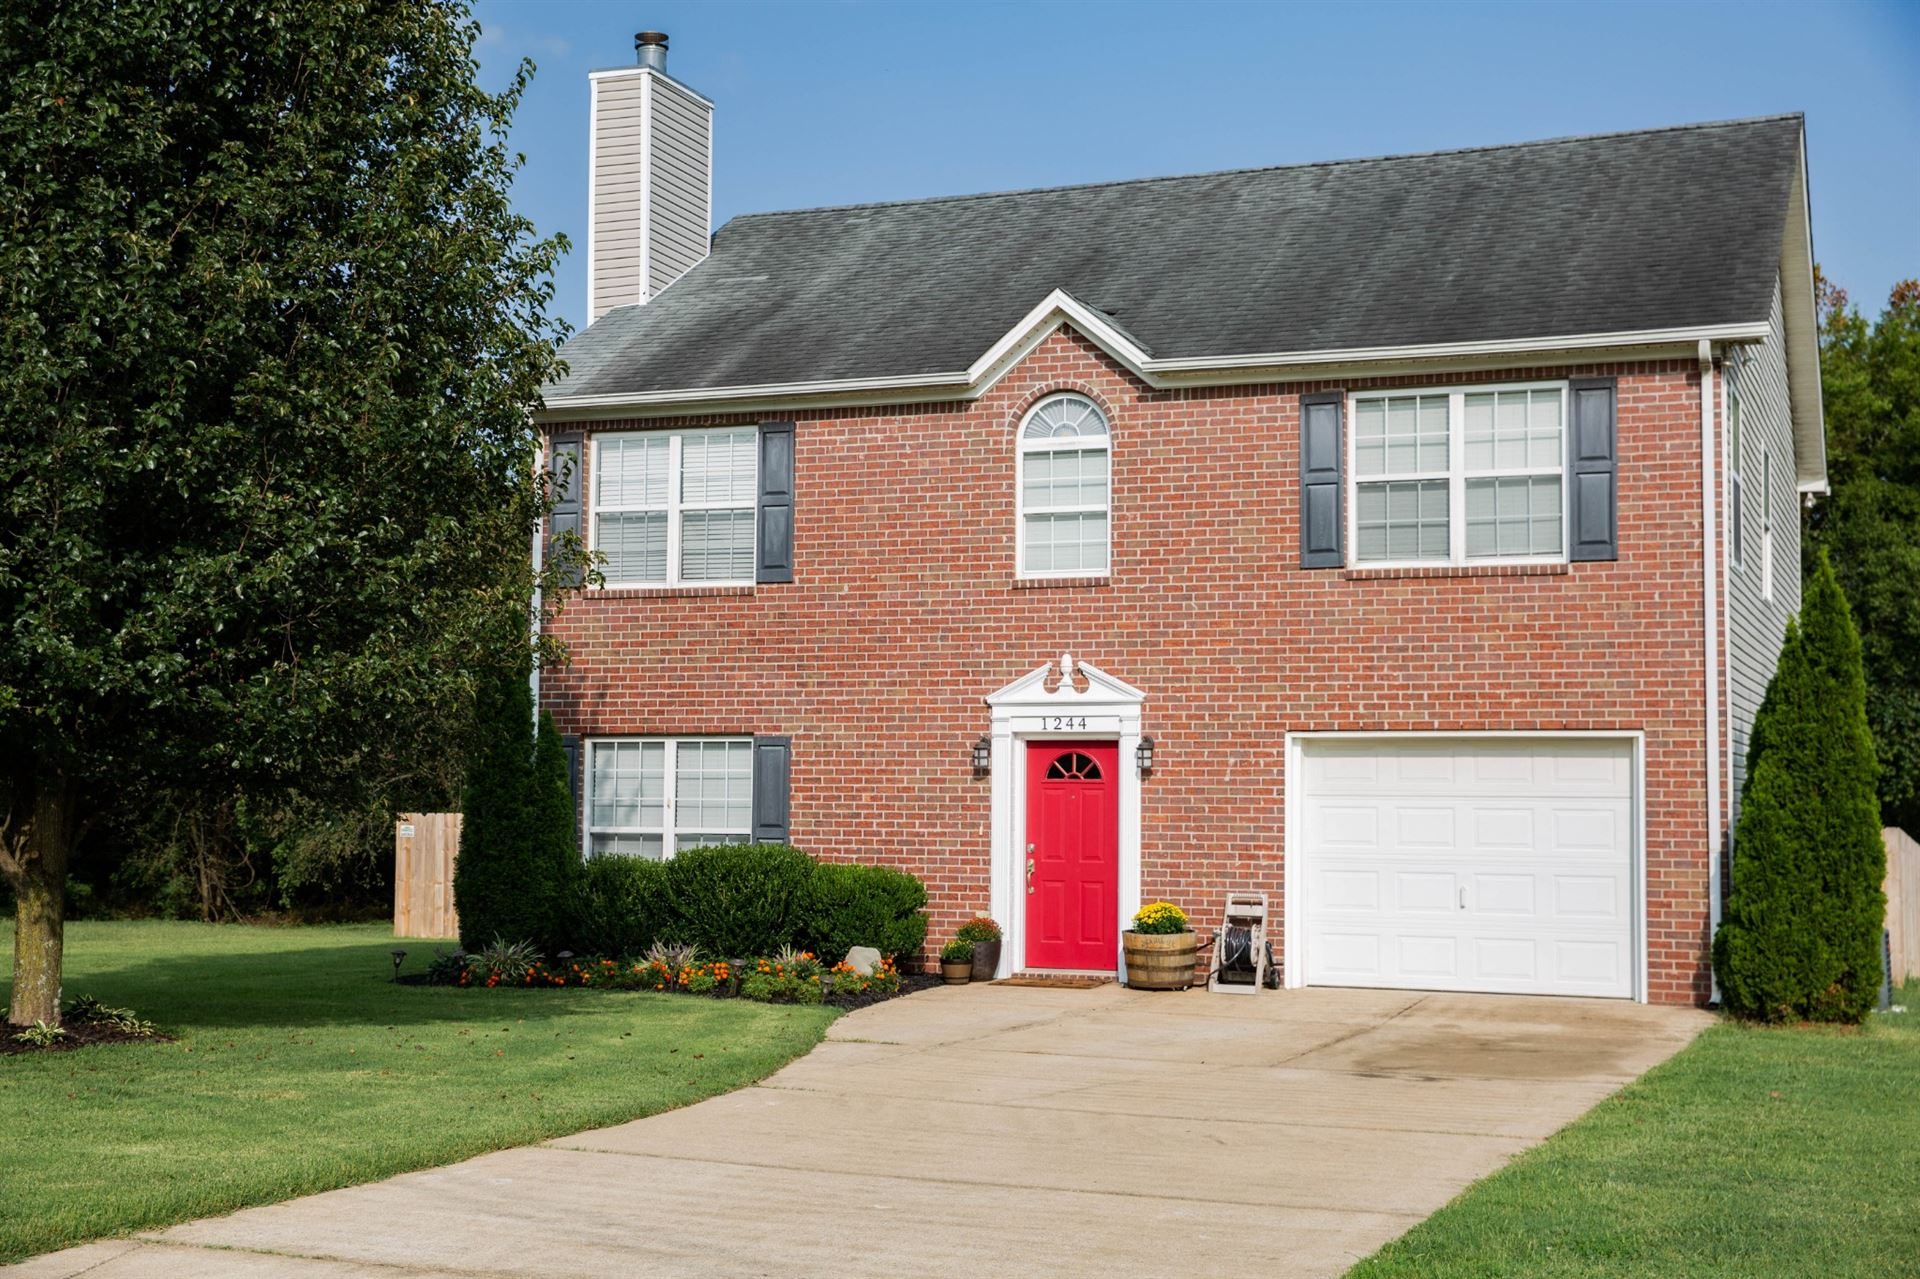 1244 Baker Creek Dr, Spring Hill, TN 37174 - MLS#: 2190063